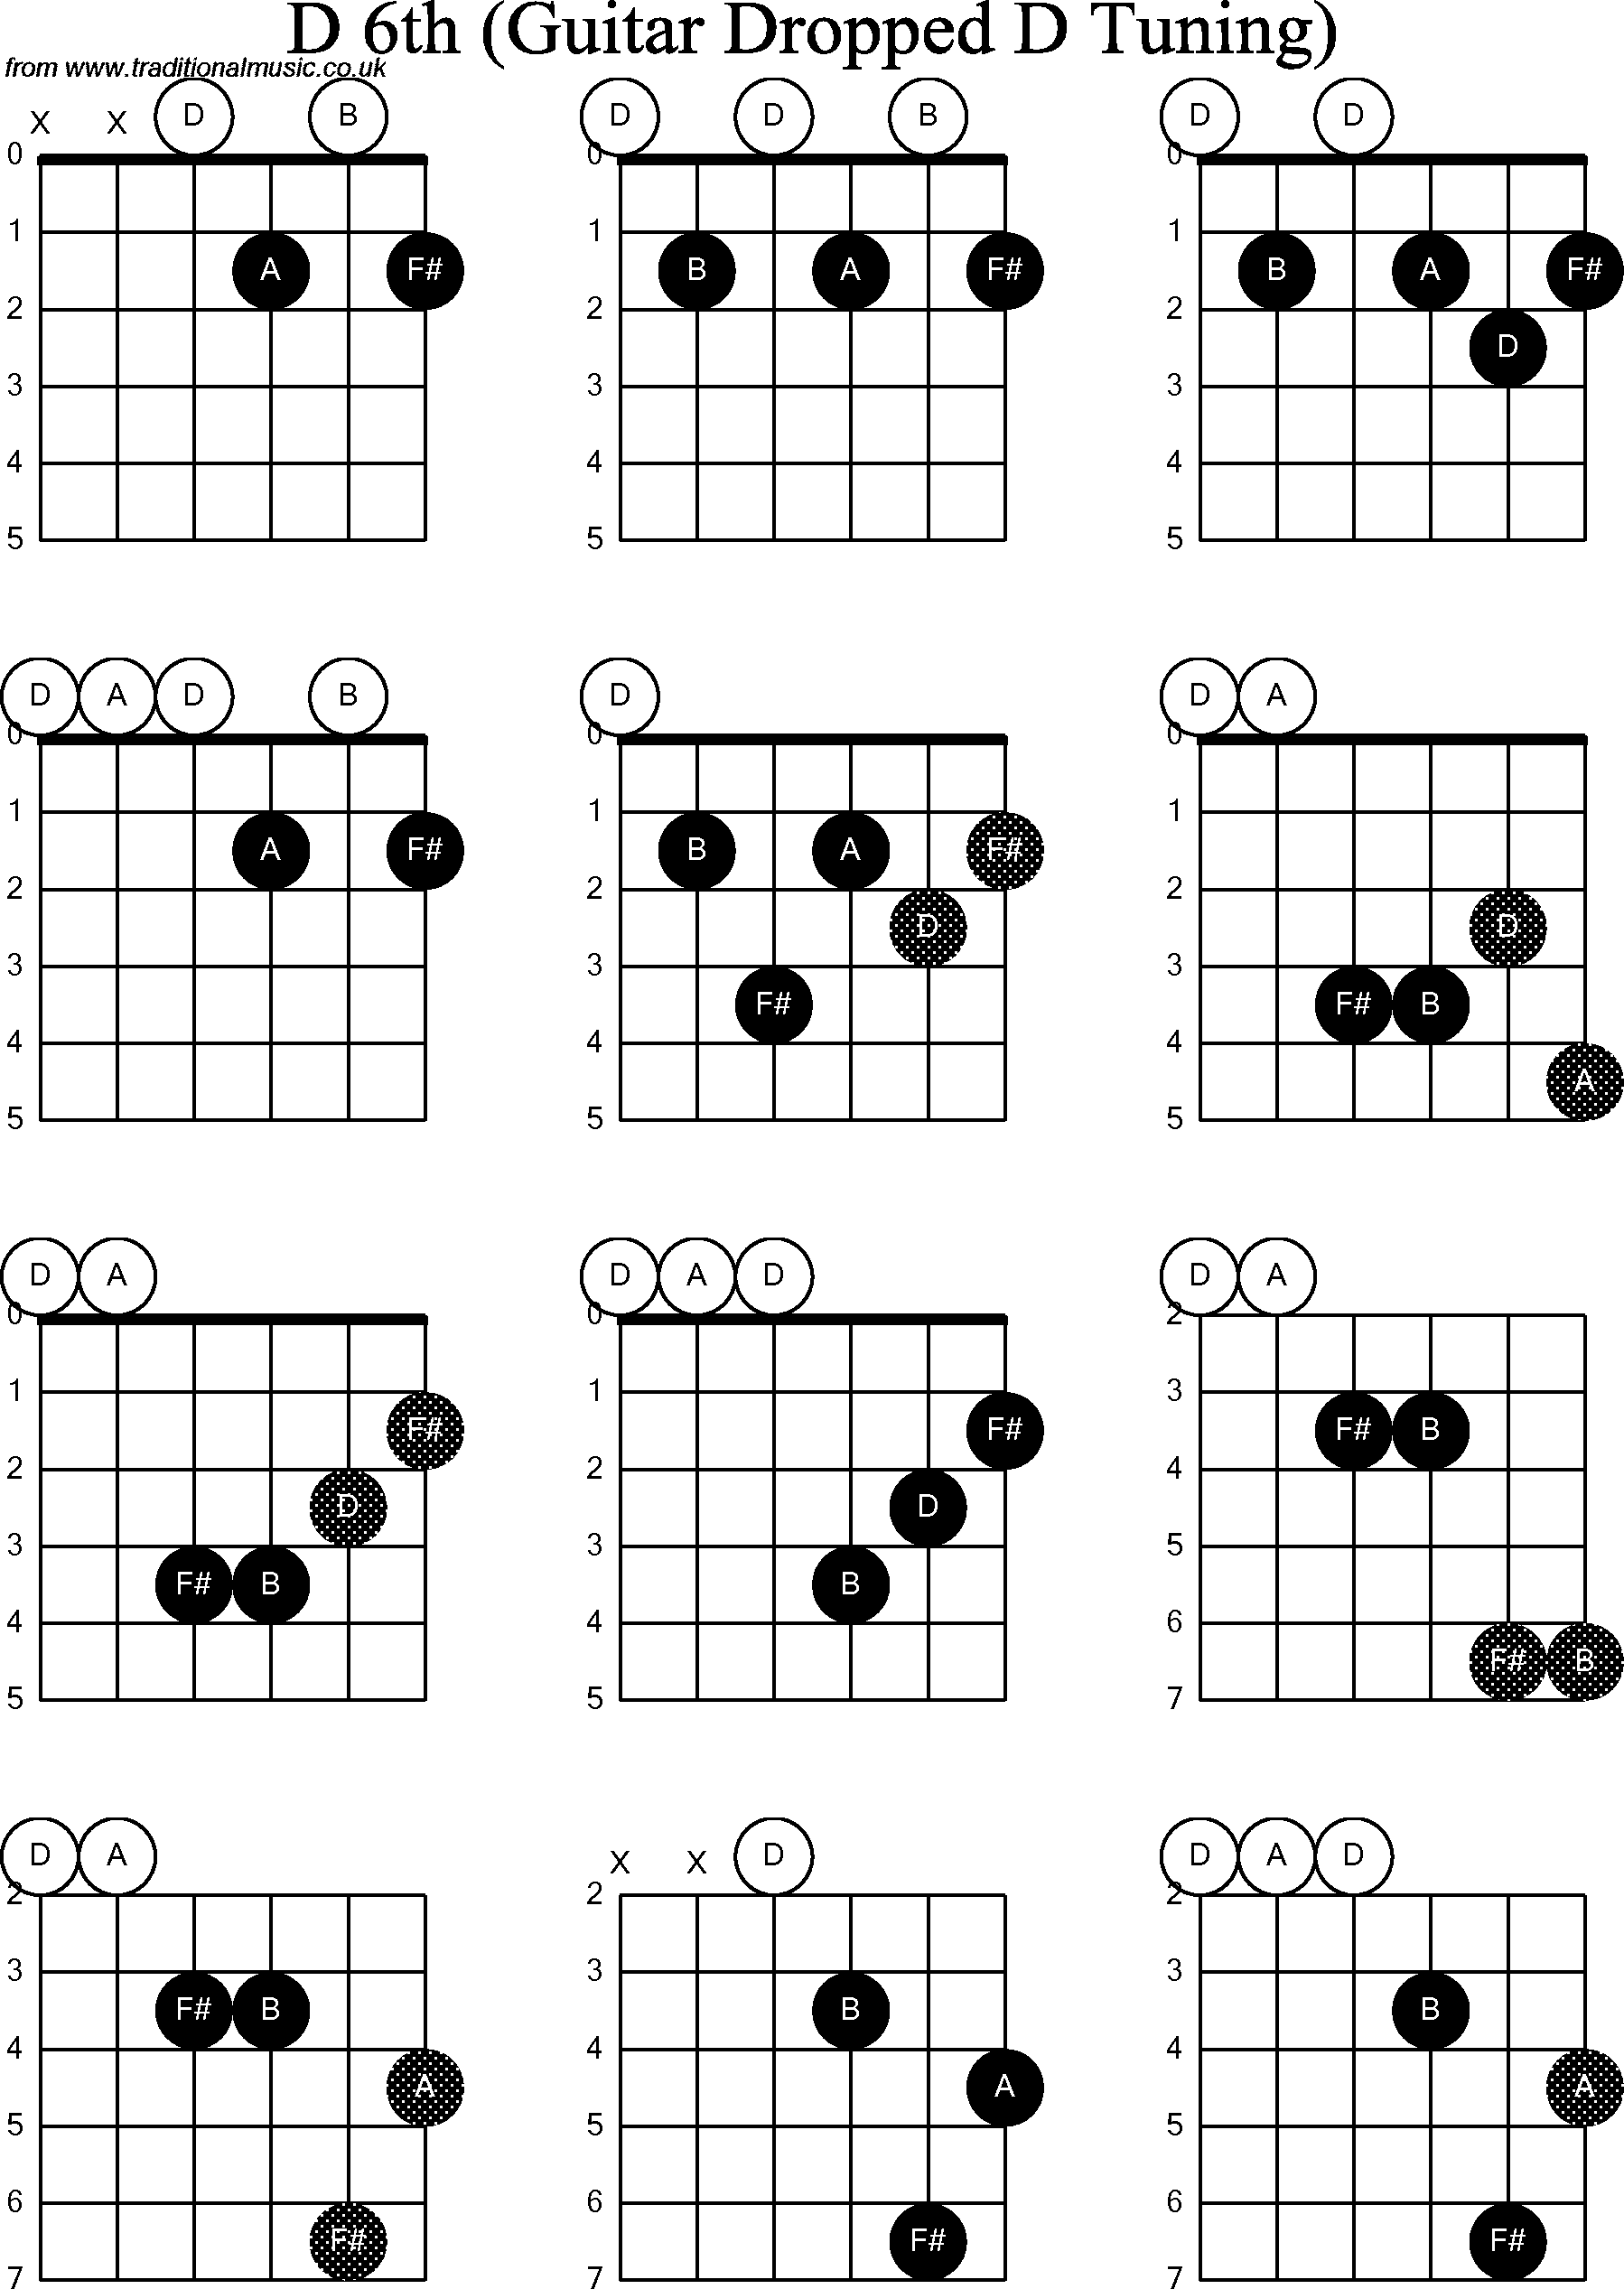 Chord diagrams for dropped d guitardadgbe d6th chord diagrams for dropped d guitardadgbe d6th hexwebz Choice Image